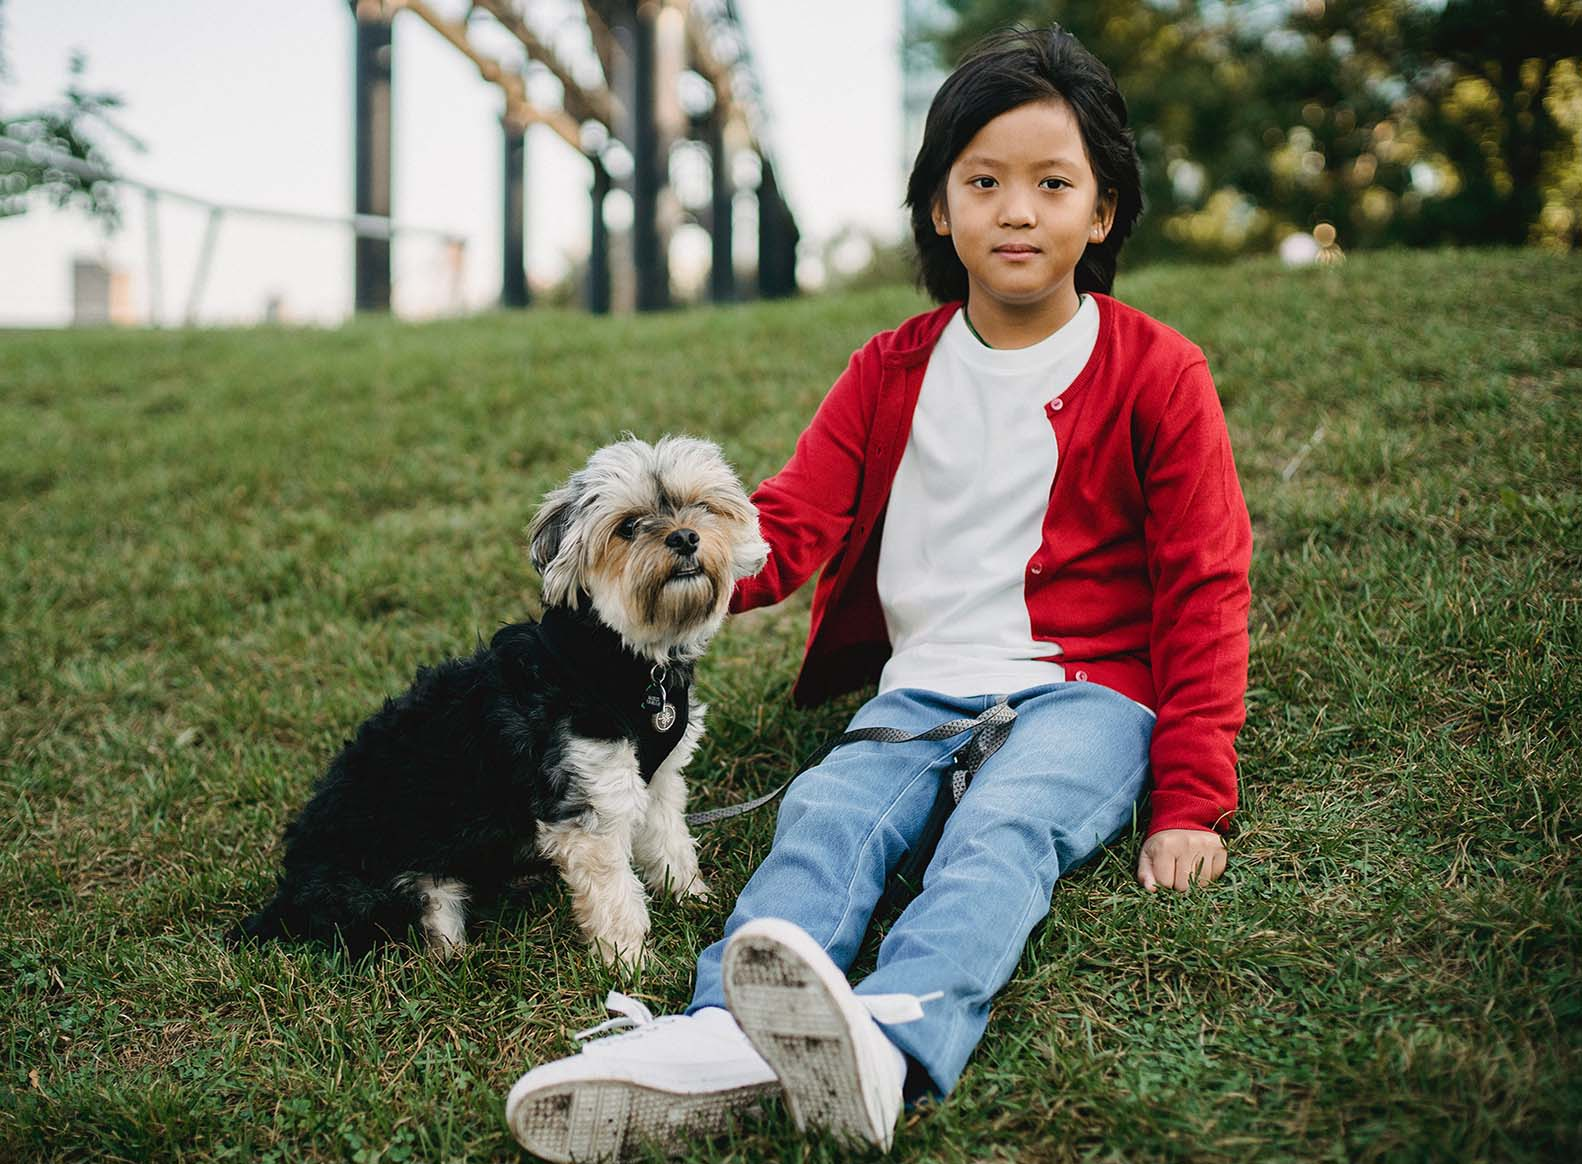 boy sitting with dog title helping introceptive awareness